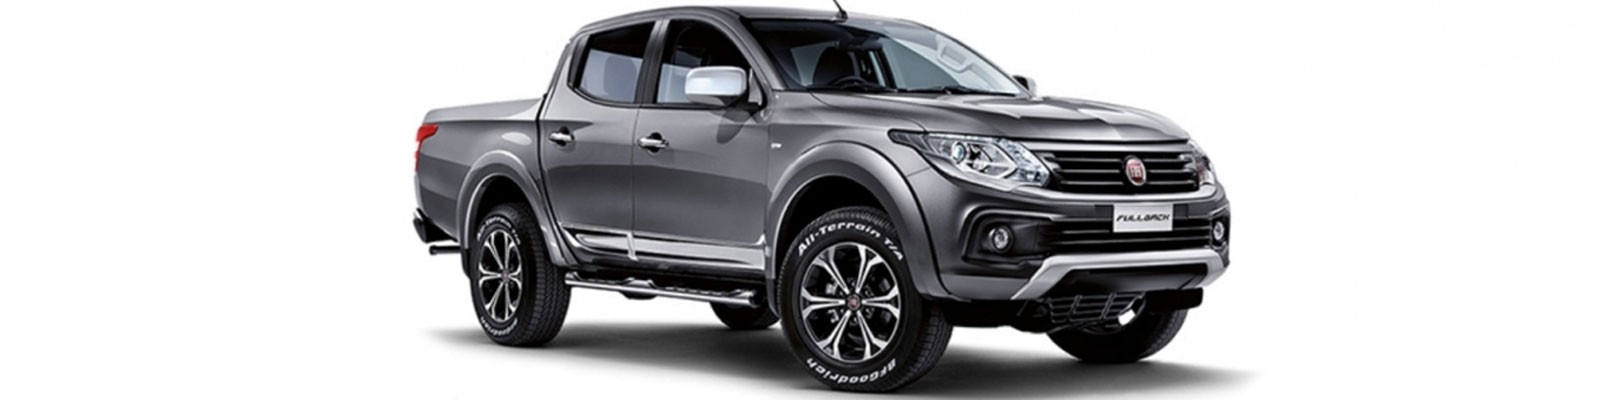 fiat fullback vehicle accessories 4x4 accessories tyres. Black Bedroom Furniture Sets. Home Design Ideas